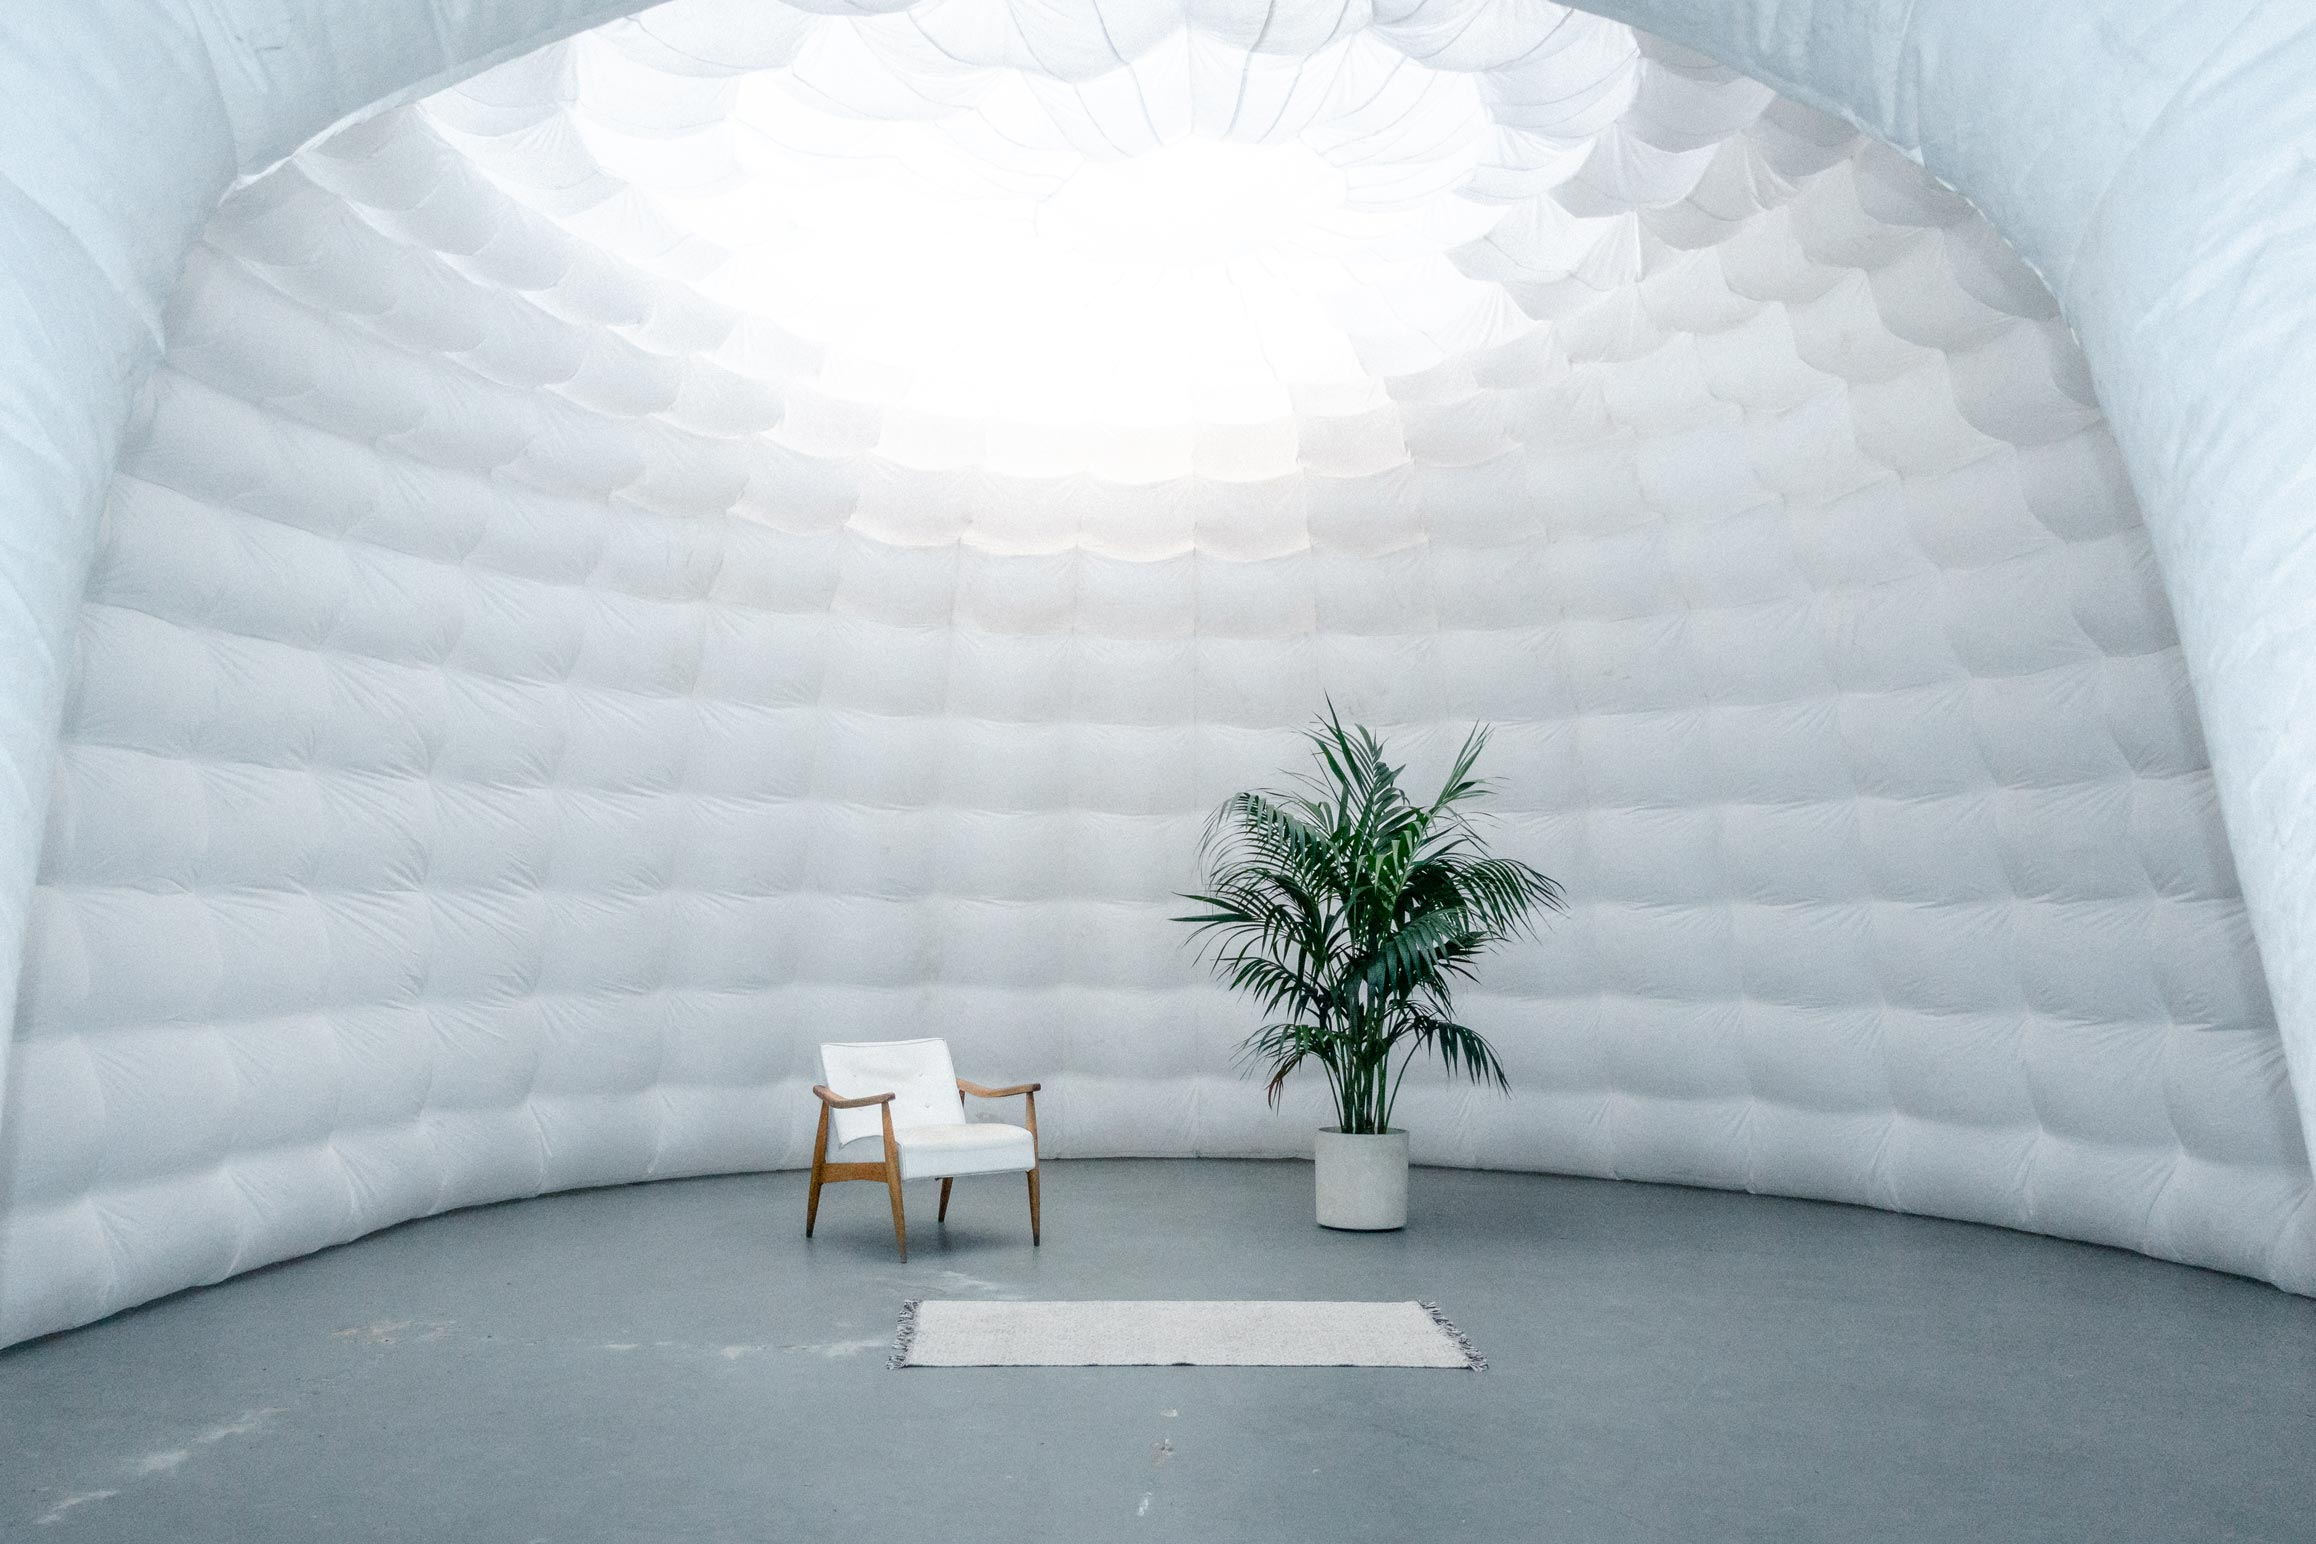 The inflatable dome set in the studio.